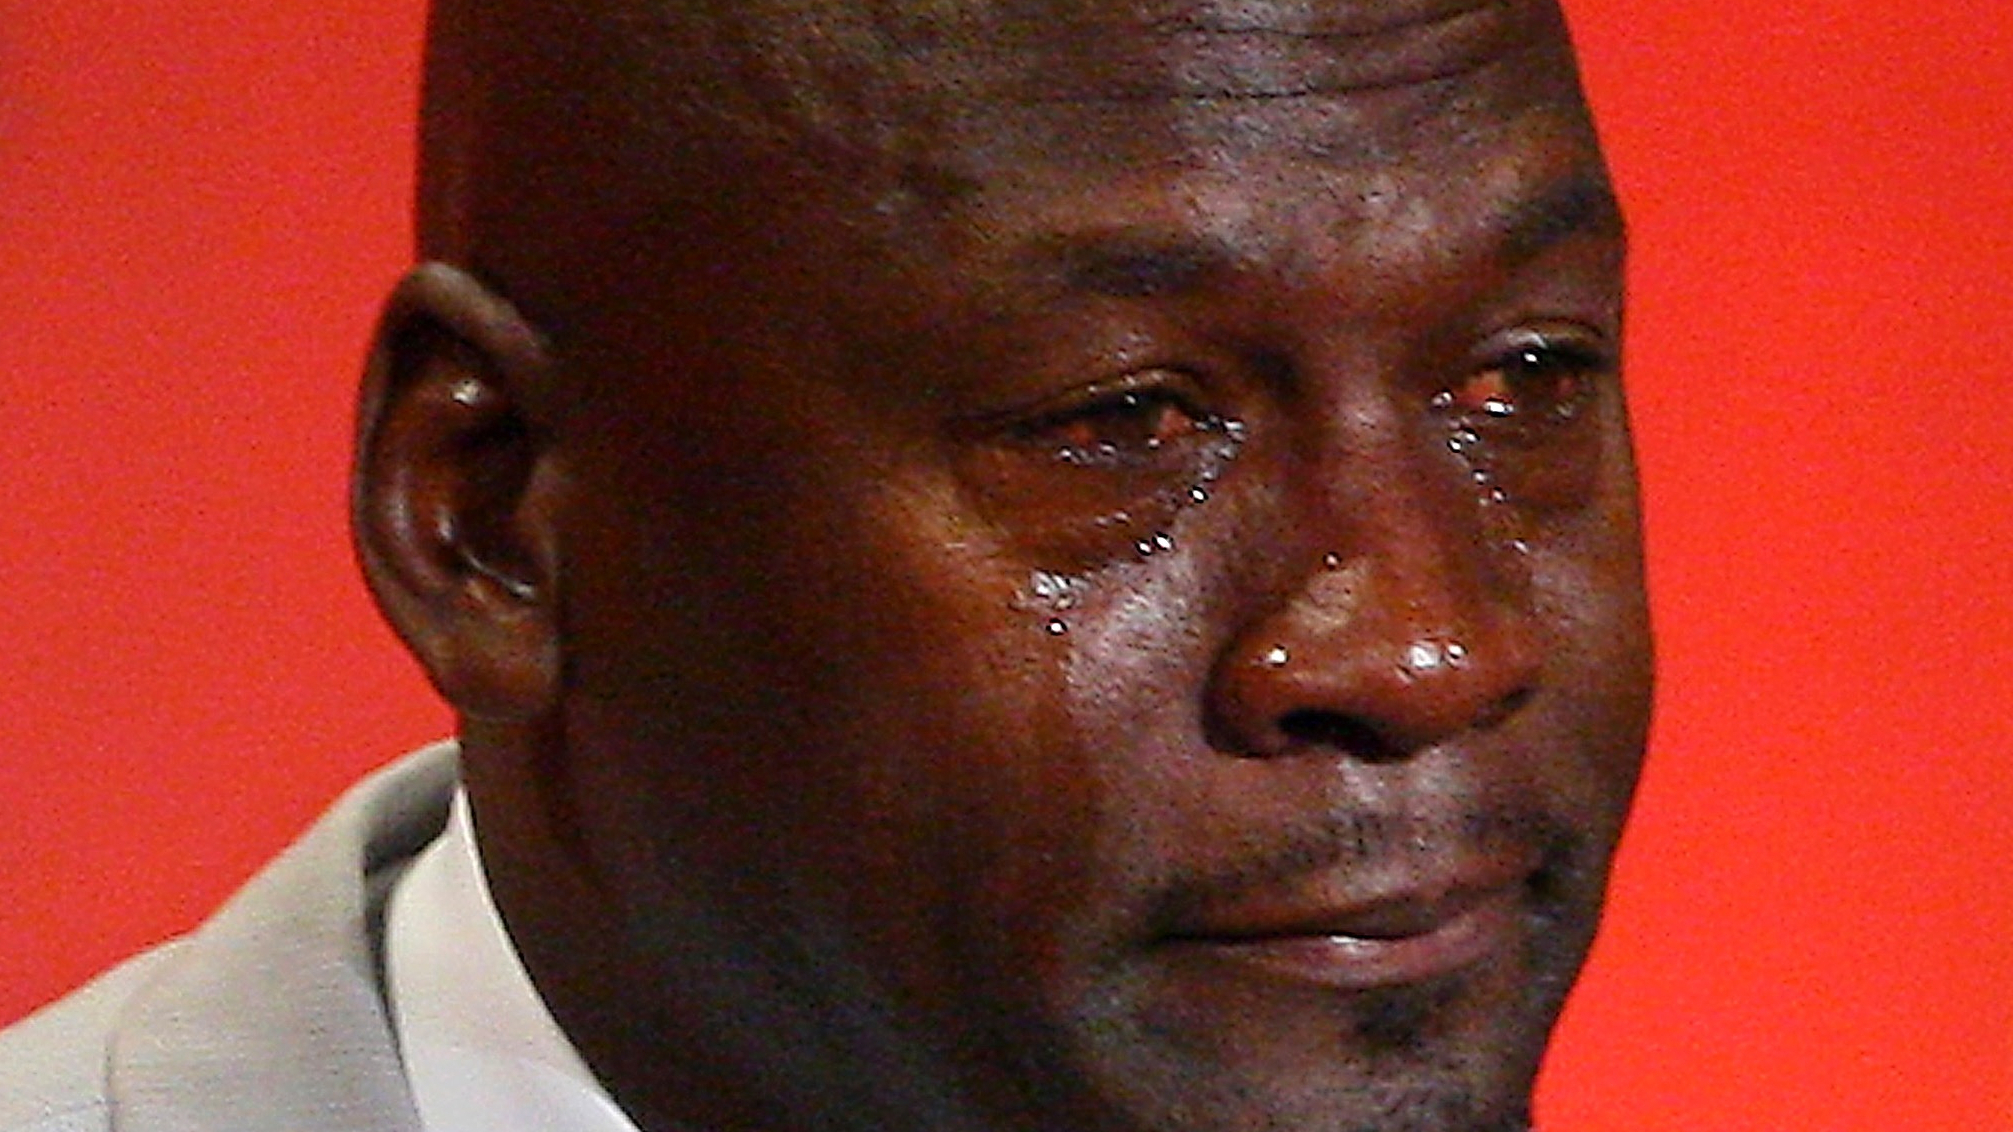 Funny Black Guy Face Meme : The evolution of the michael jordan crying face meme the two way